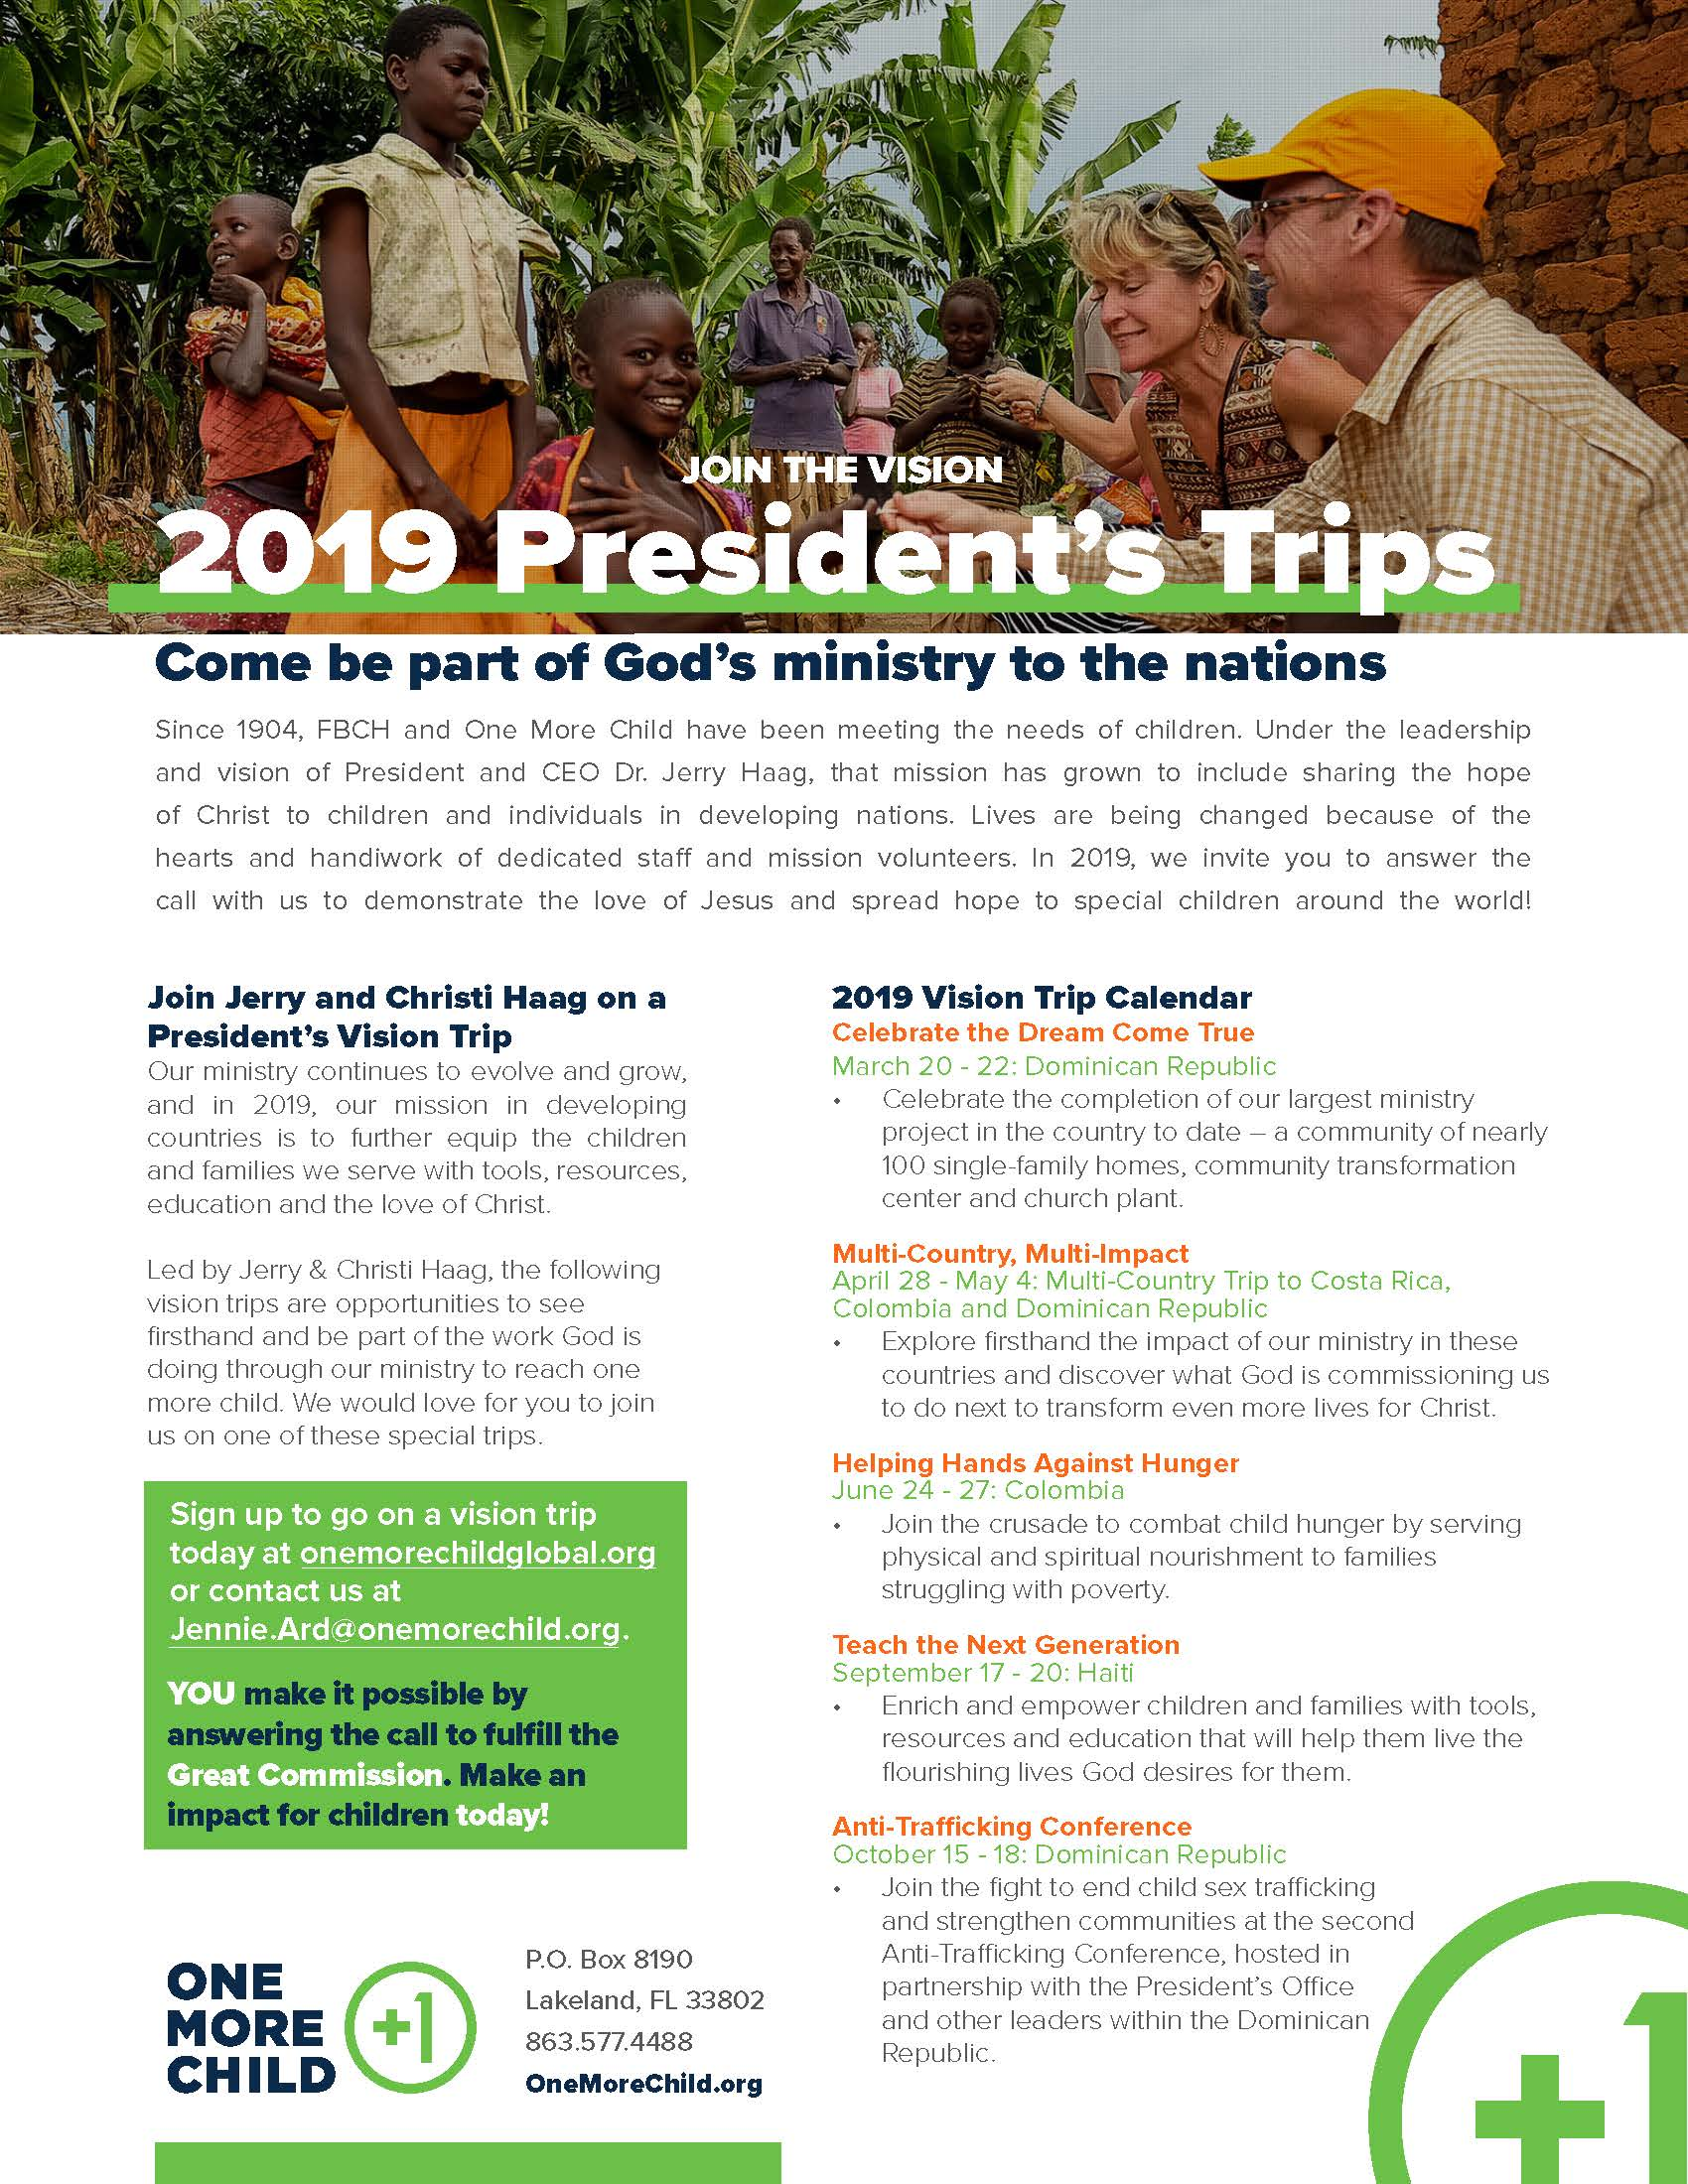 President's Trip: Anti- Trafficking Conference (DR-Oct-15-2019